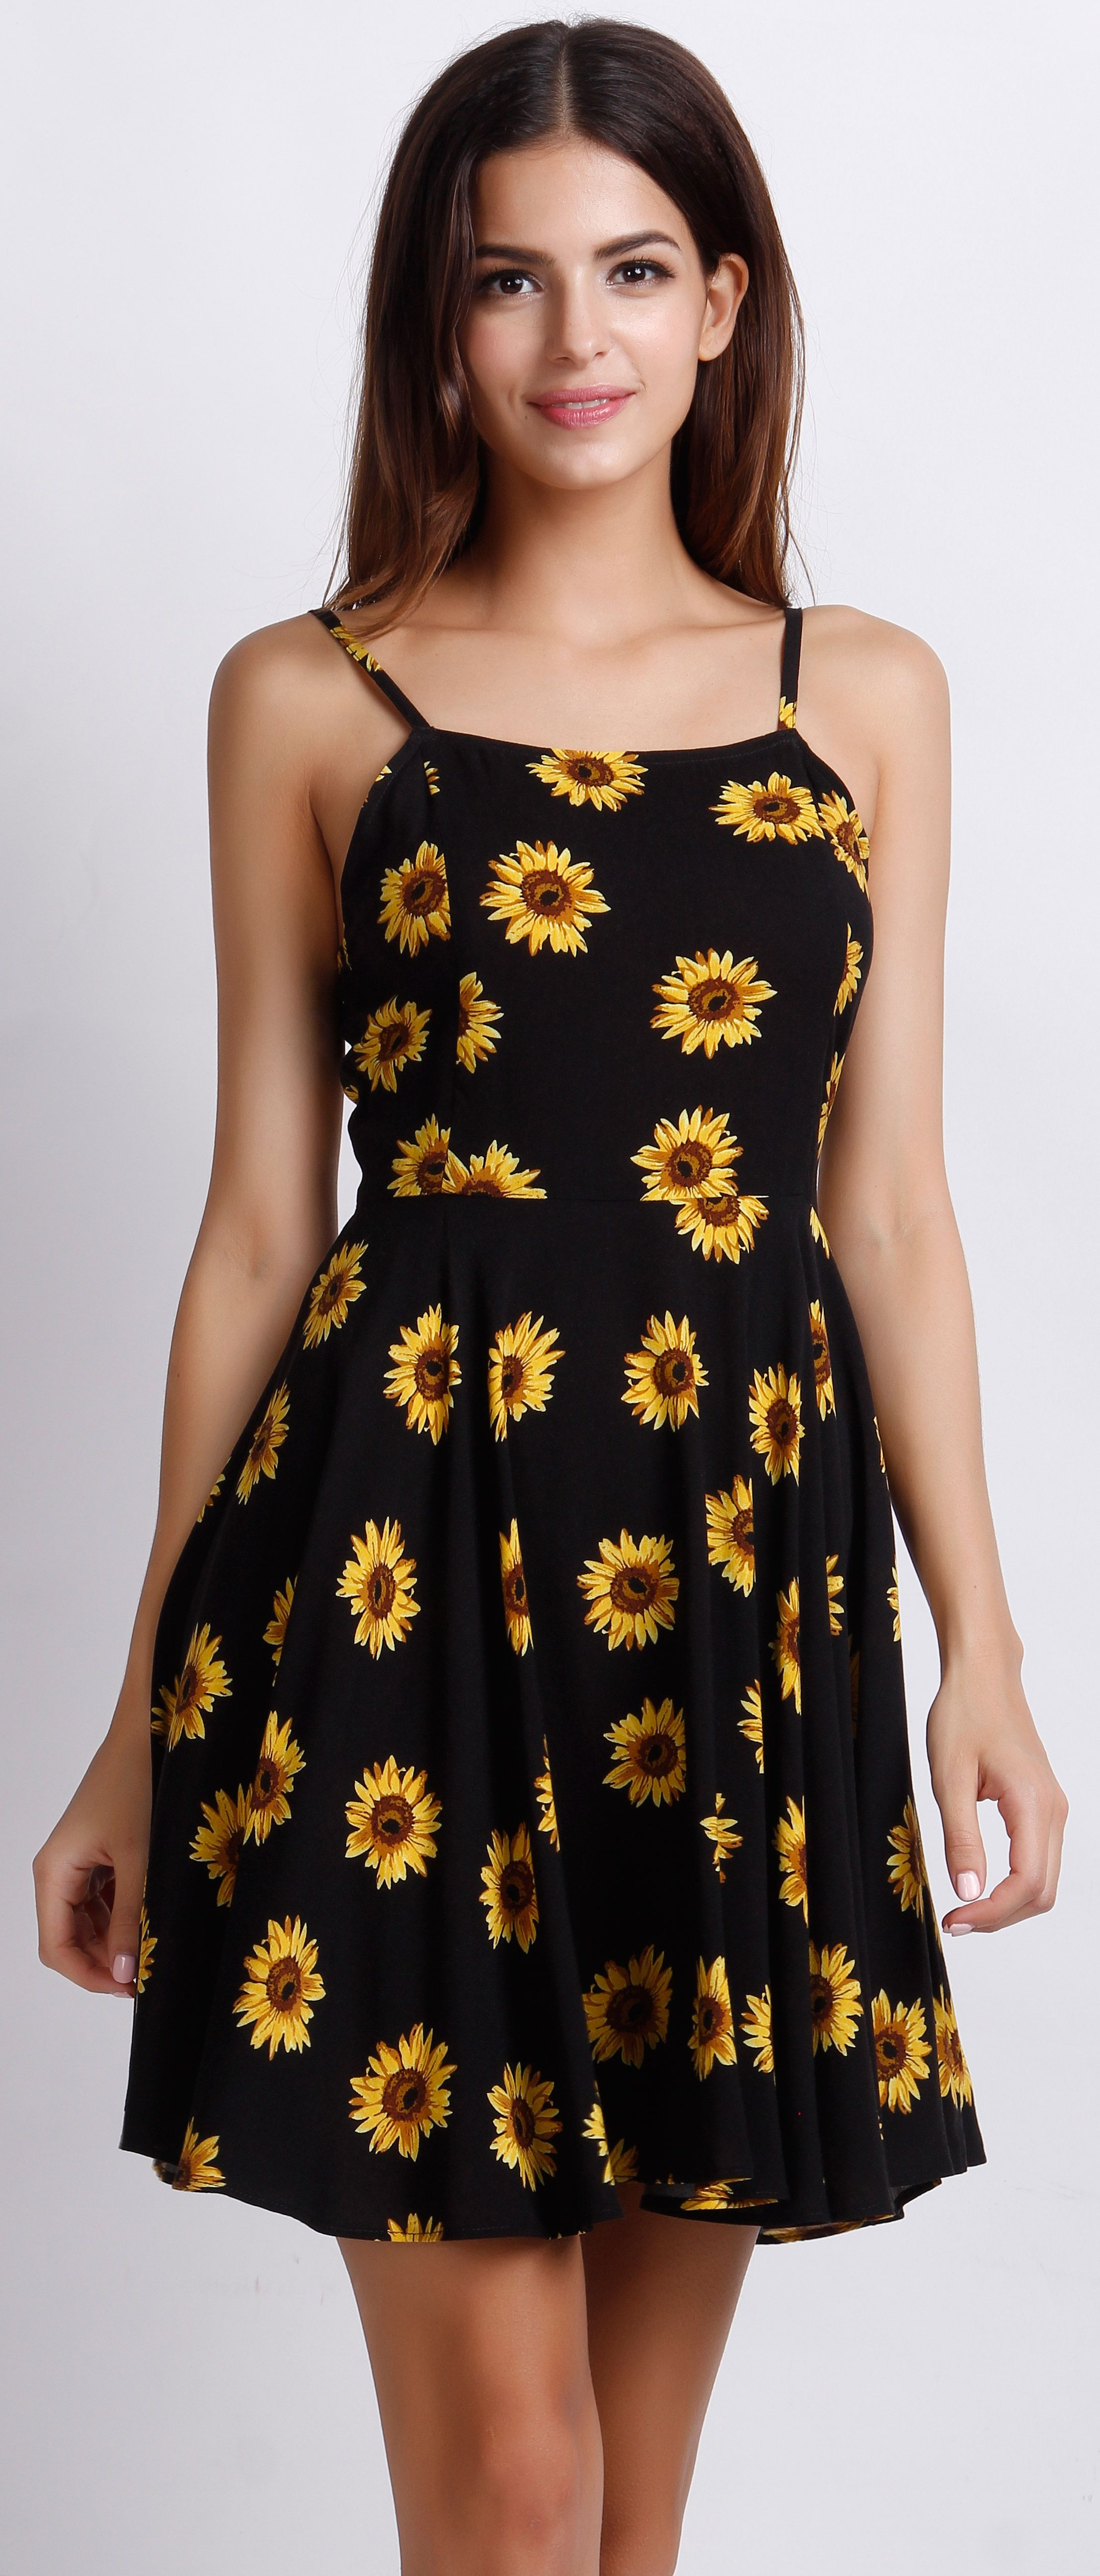 af135b54165 Being cheerful and lively just like the sunflower printed in the dress.  Show your sunny side in this hot summer. Find it at OASAP.